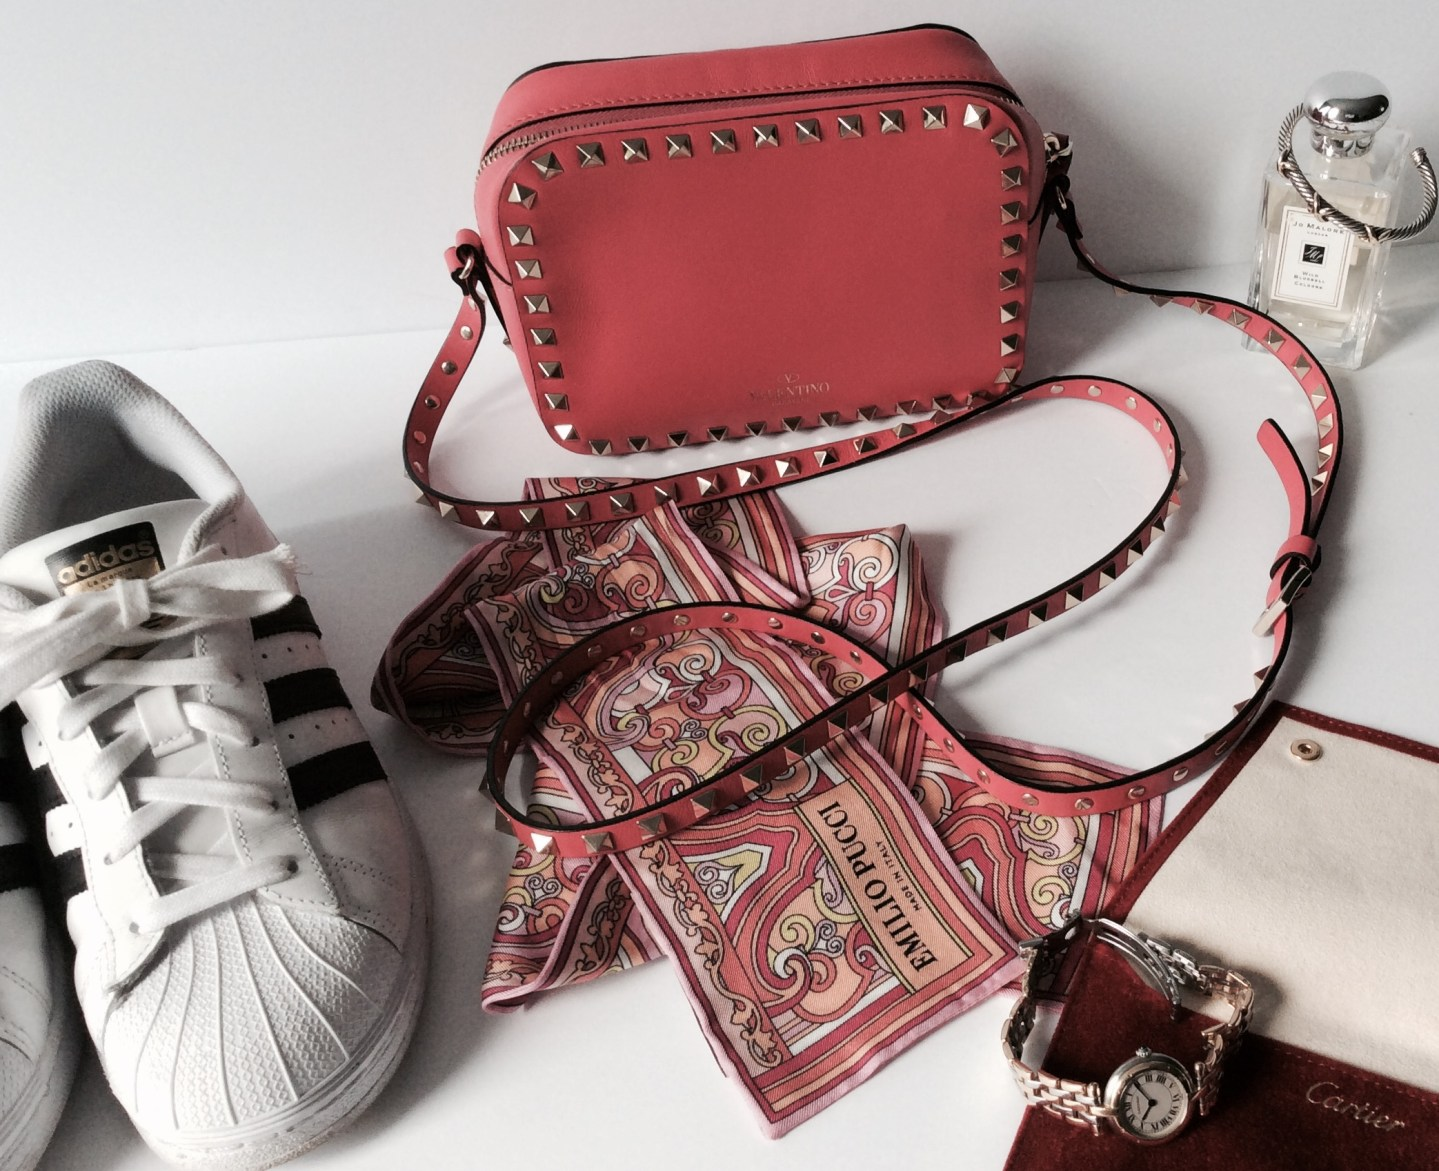 Bag of the day: Valentino rockstud